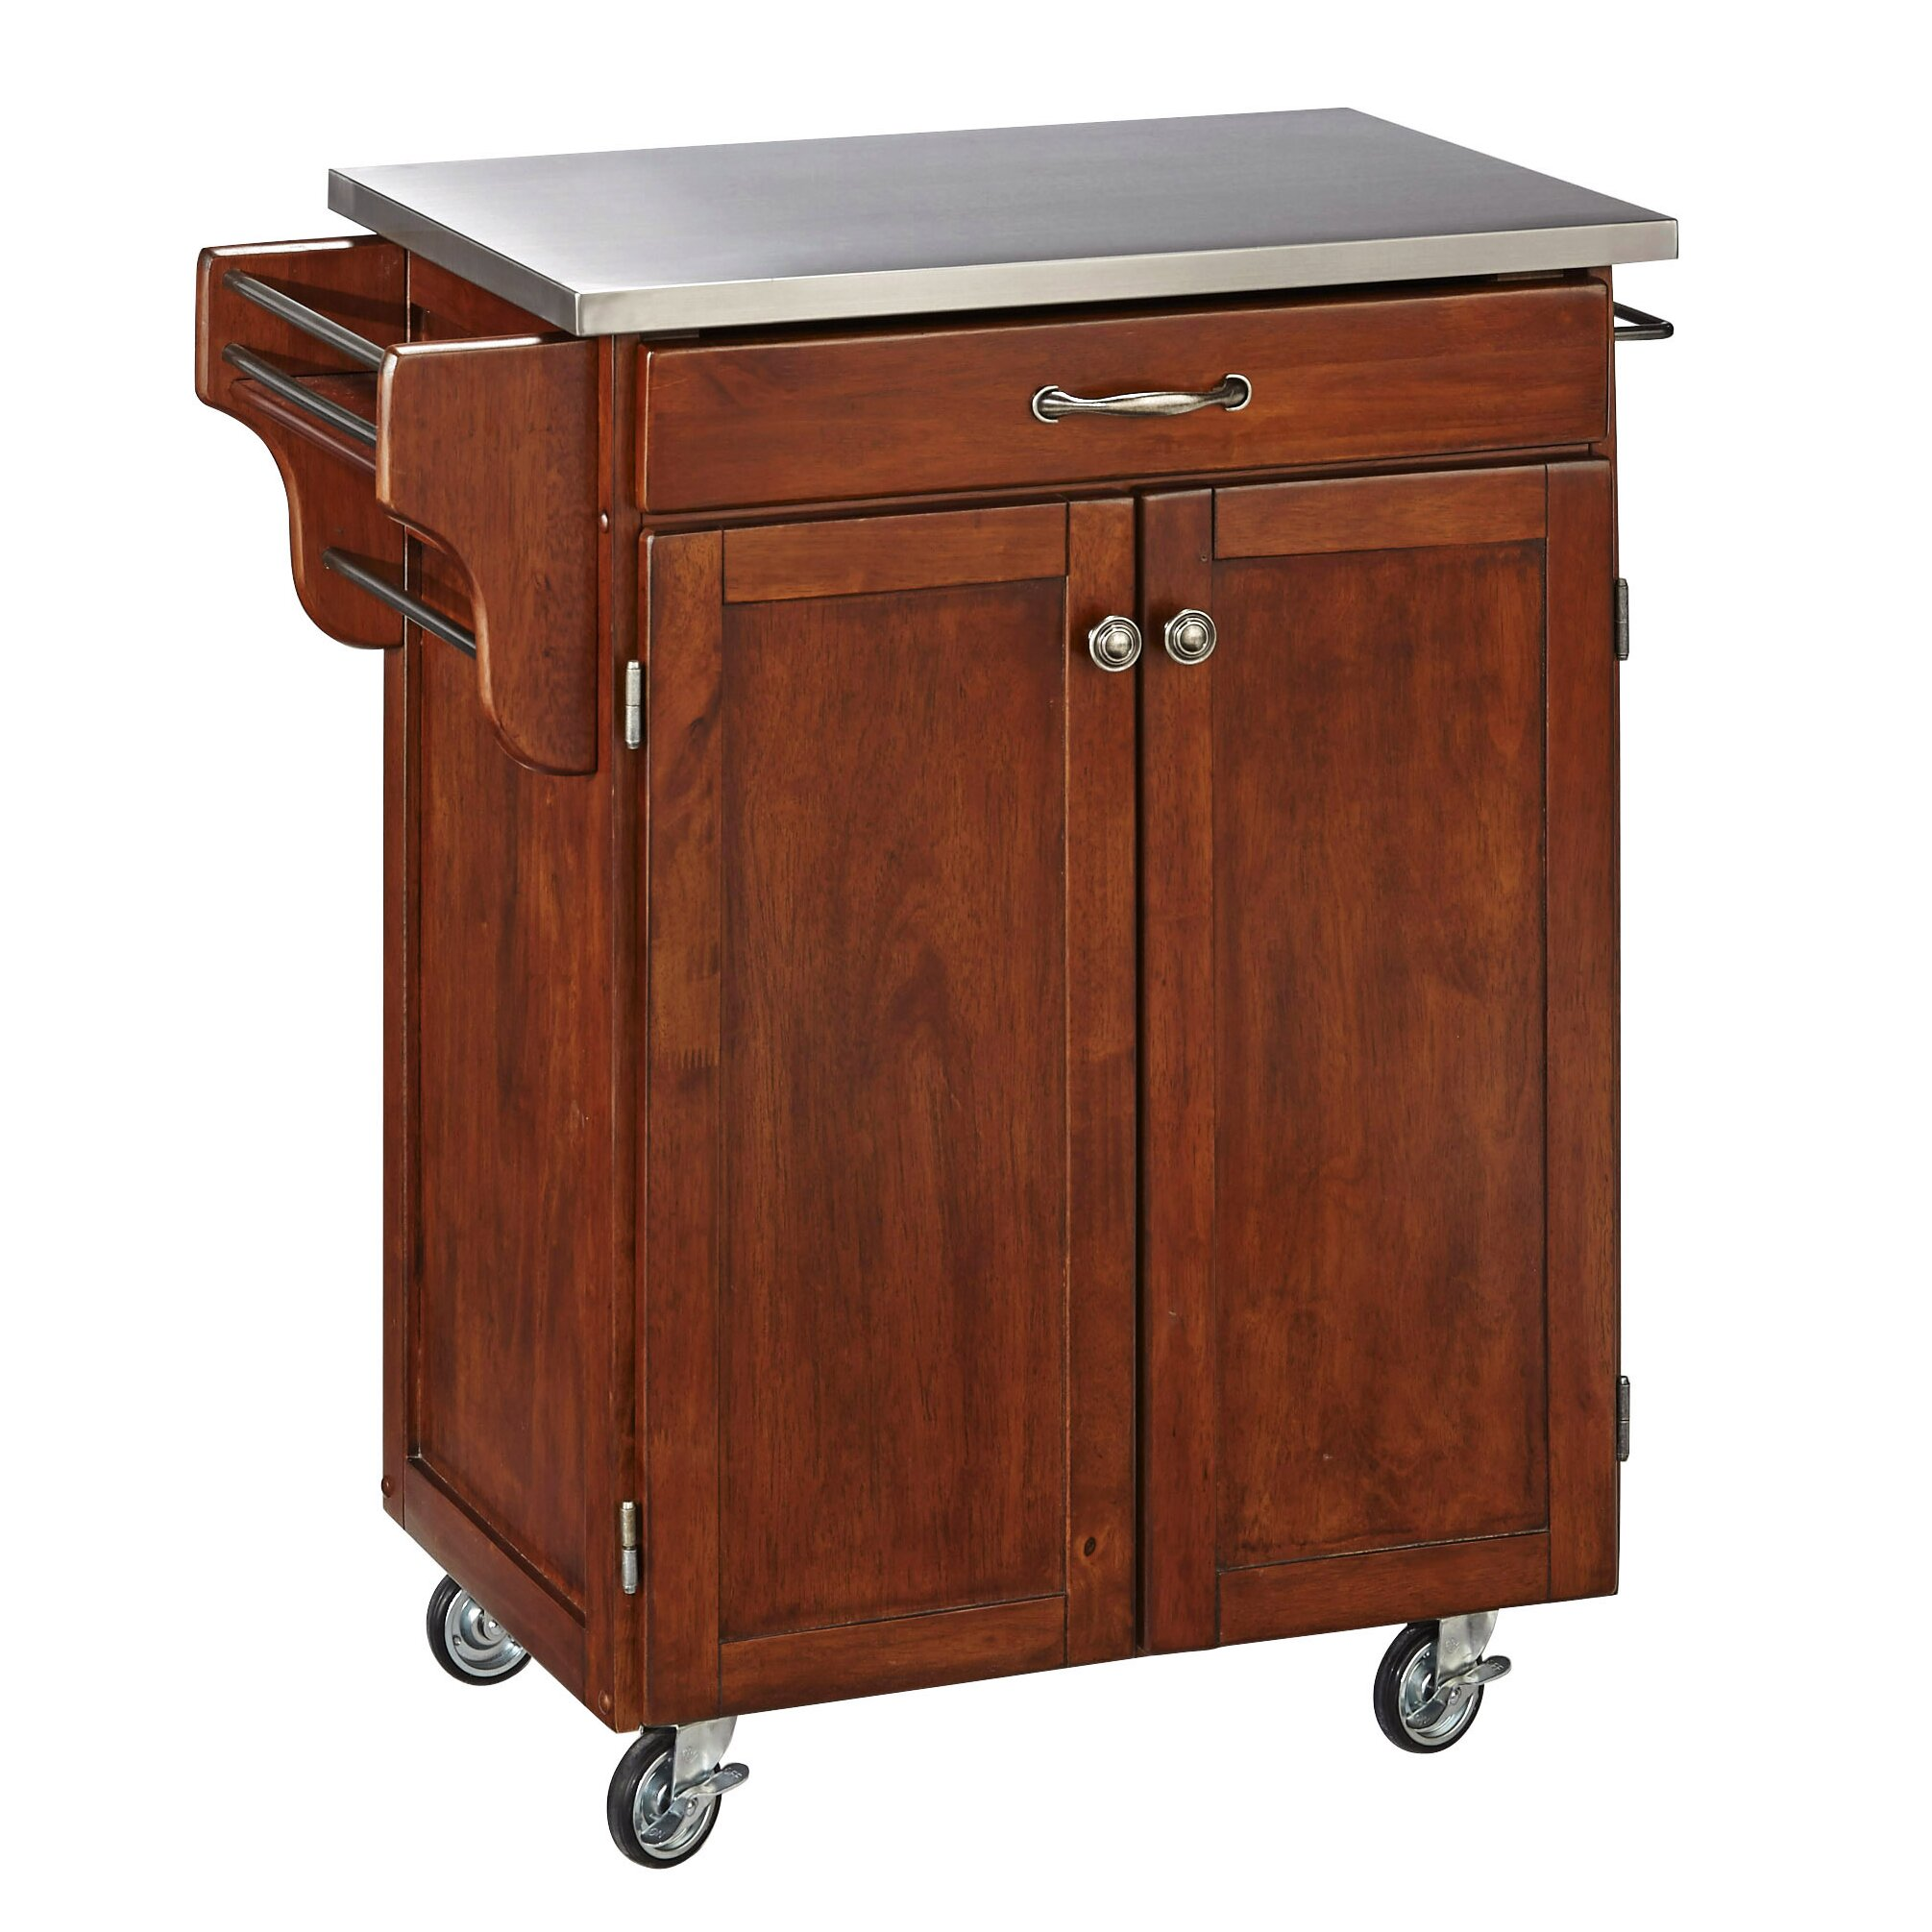 Stainless Kitchen Cart: Home Styles Cuisine Kitchen Cart With Stainless Steel Top